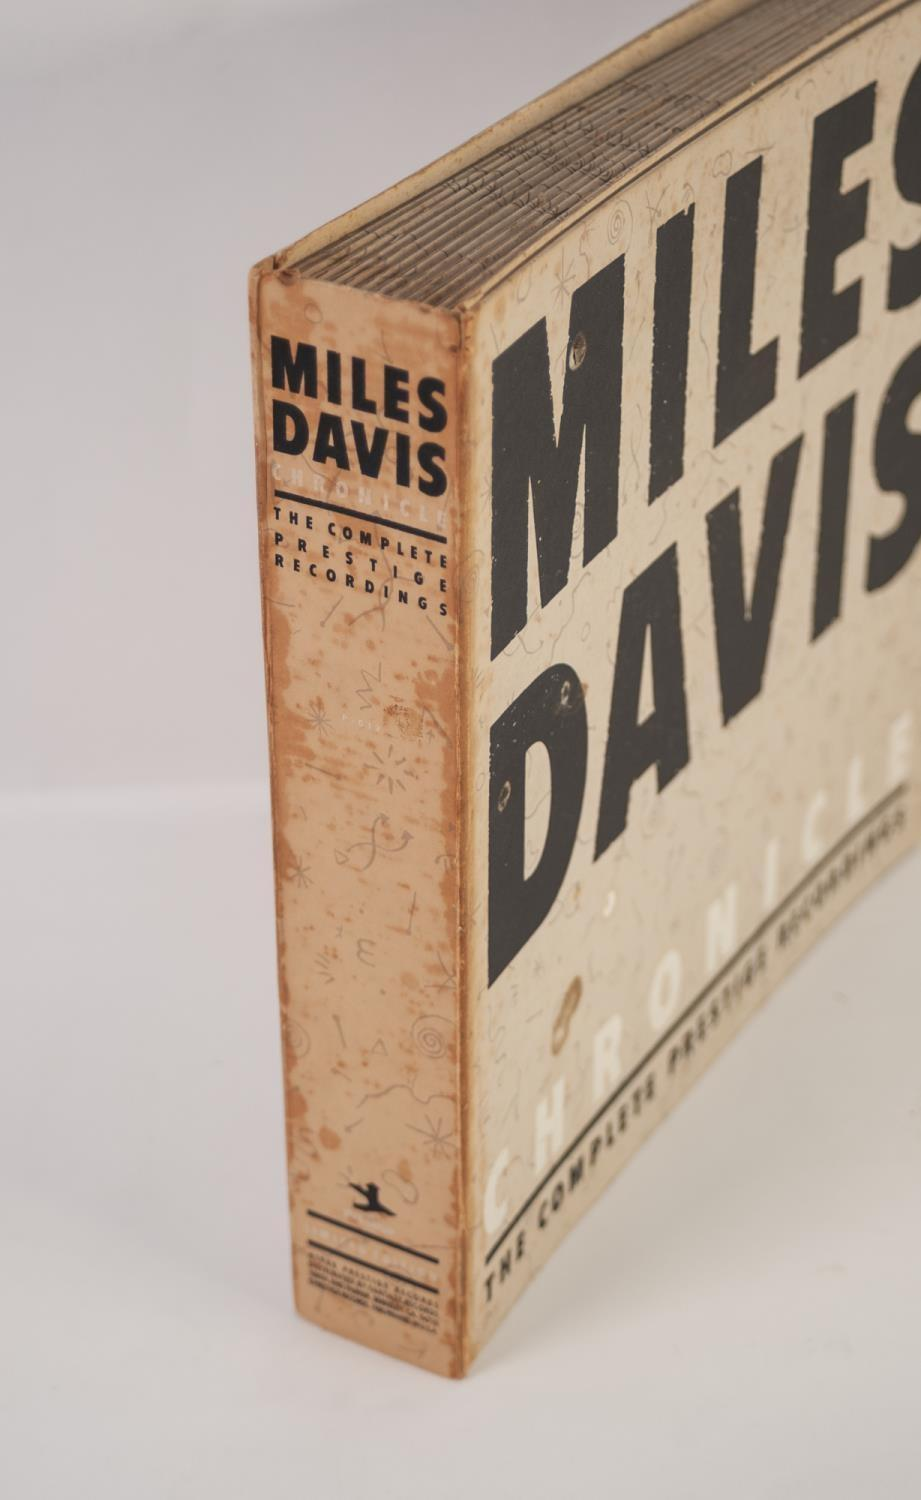 JAZZ, VINYL RECORDS- D IS FOR MILES DAVIS- CHRONICLE THE COMPLETE PRESTIGE RECORDINGS 1951-1956, - Image 6 of 6